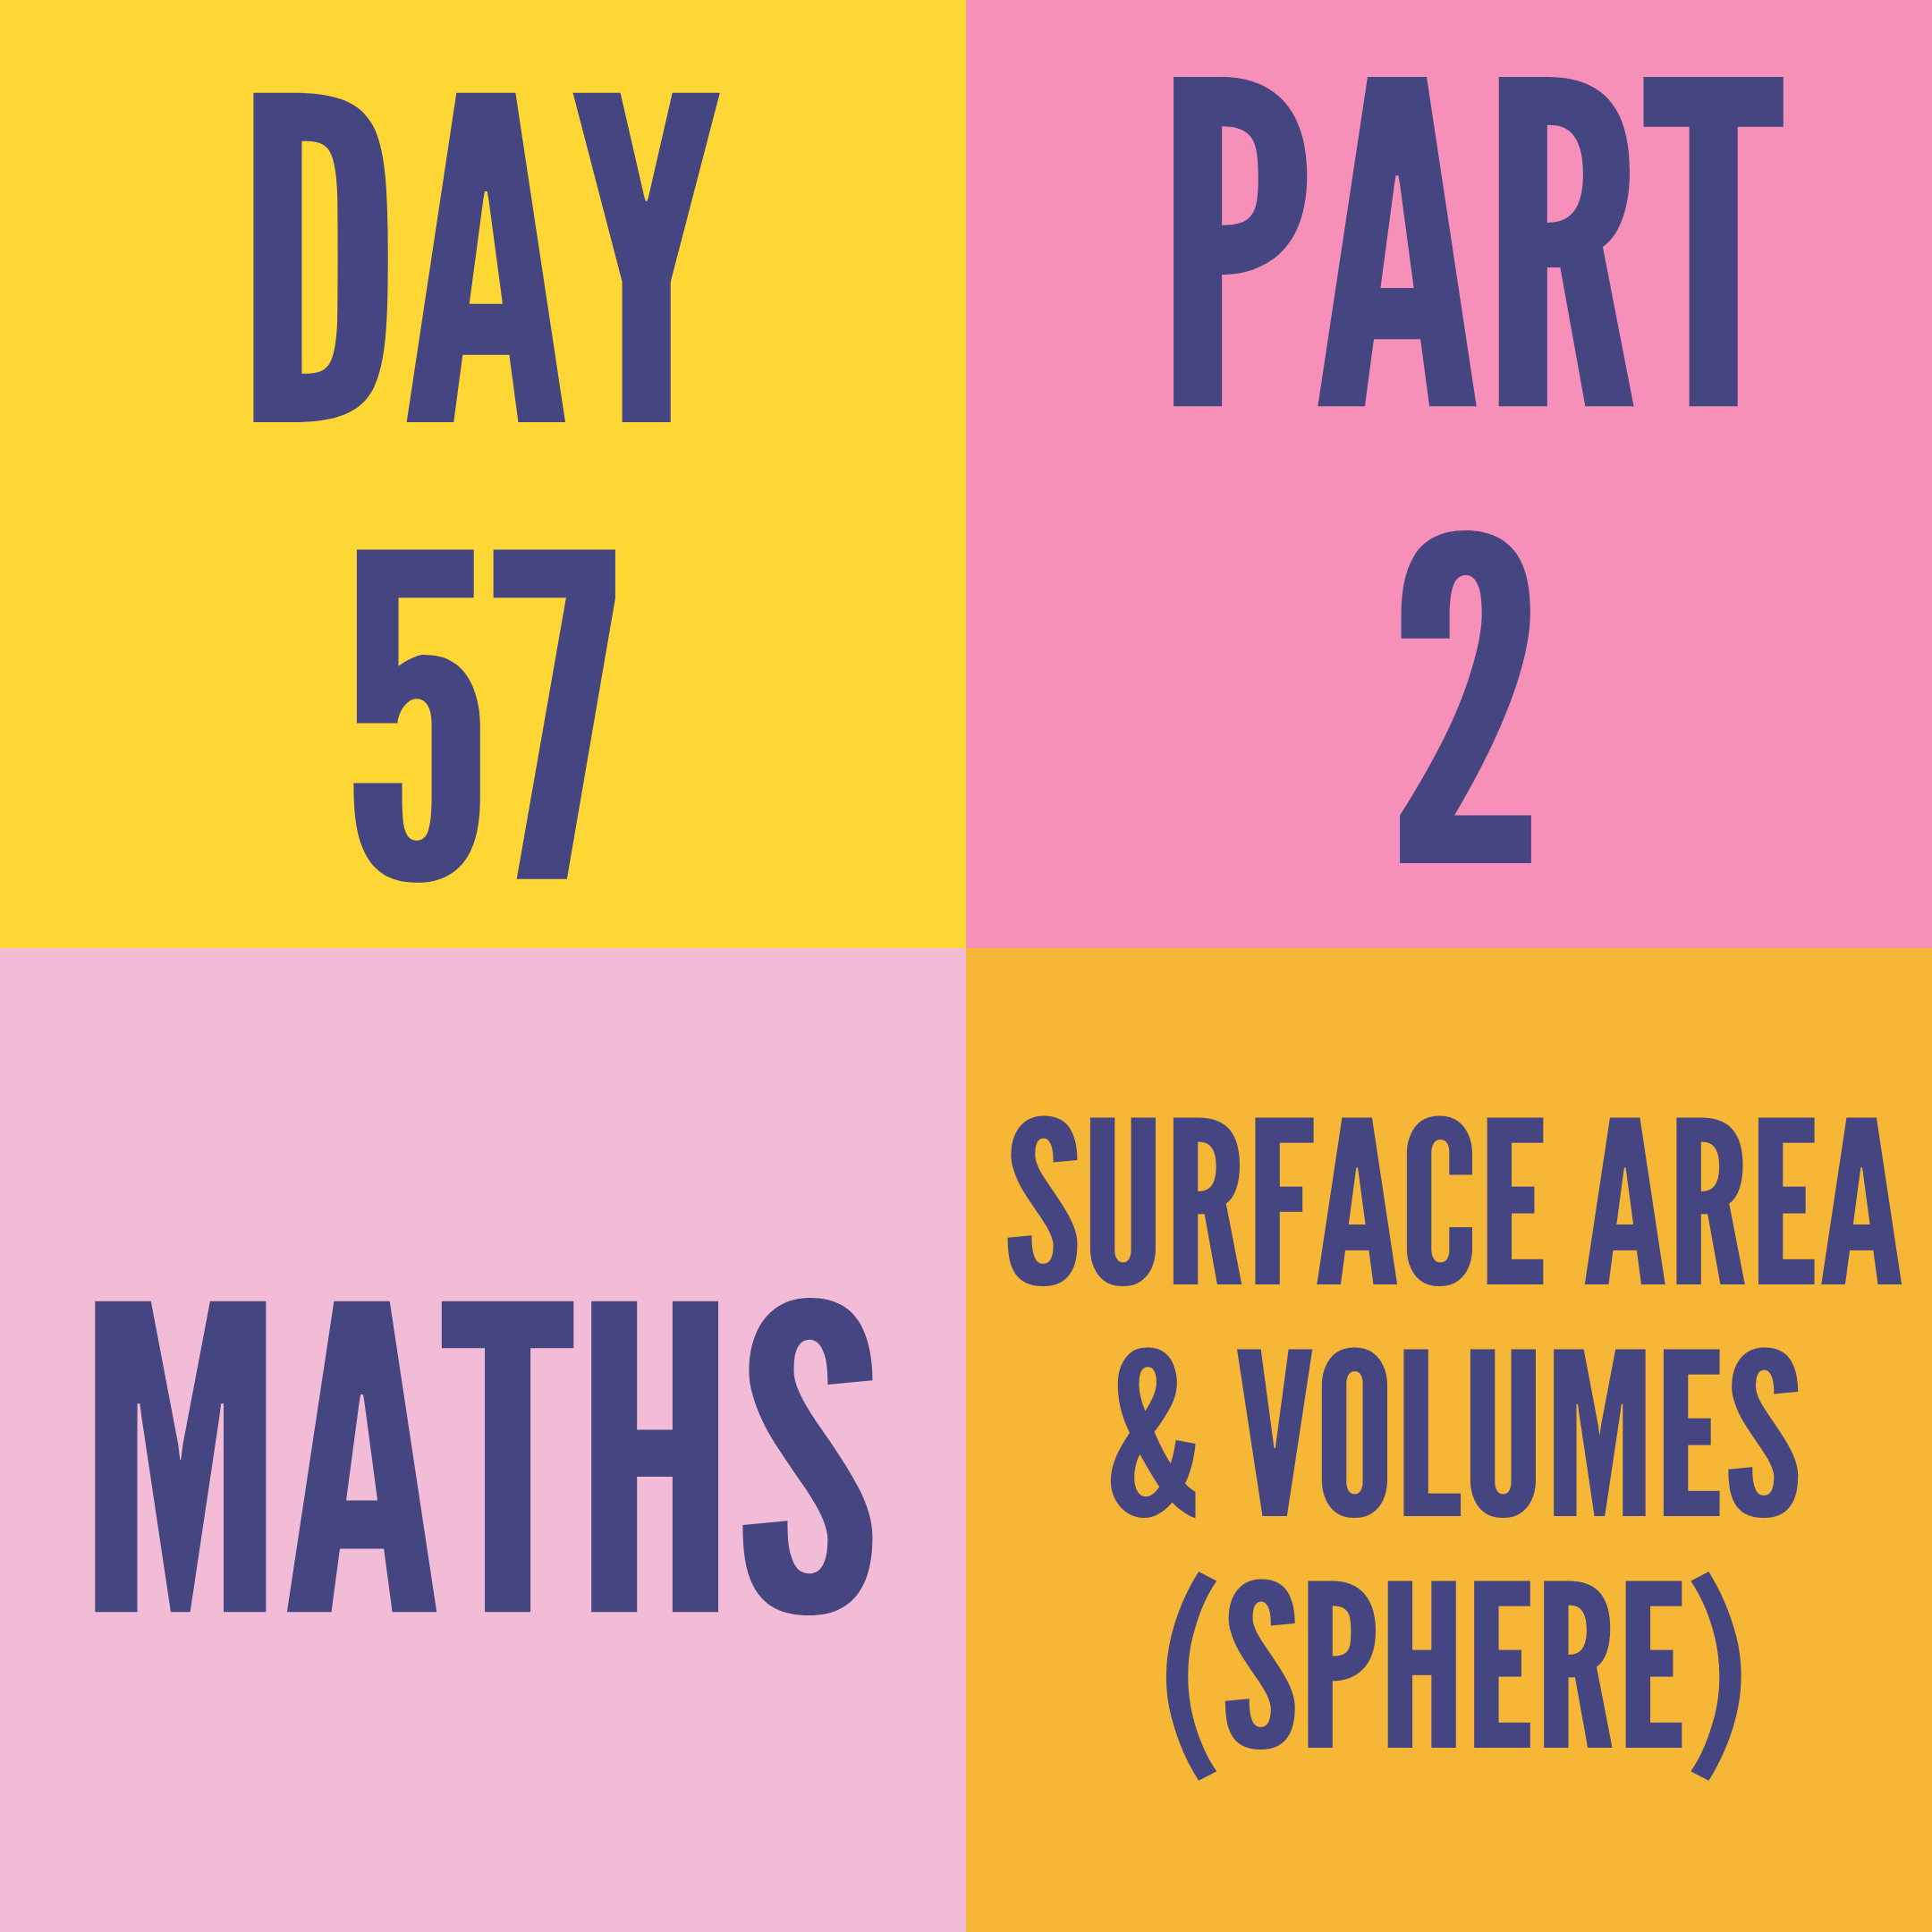 DAY-57 PART-2 SURFACE AREA & VOLUMES (SPHERE)